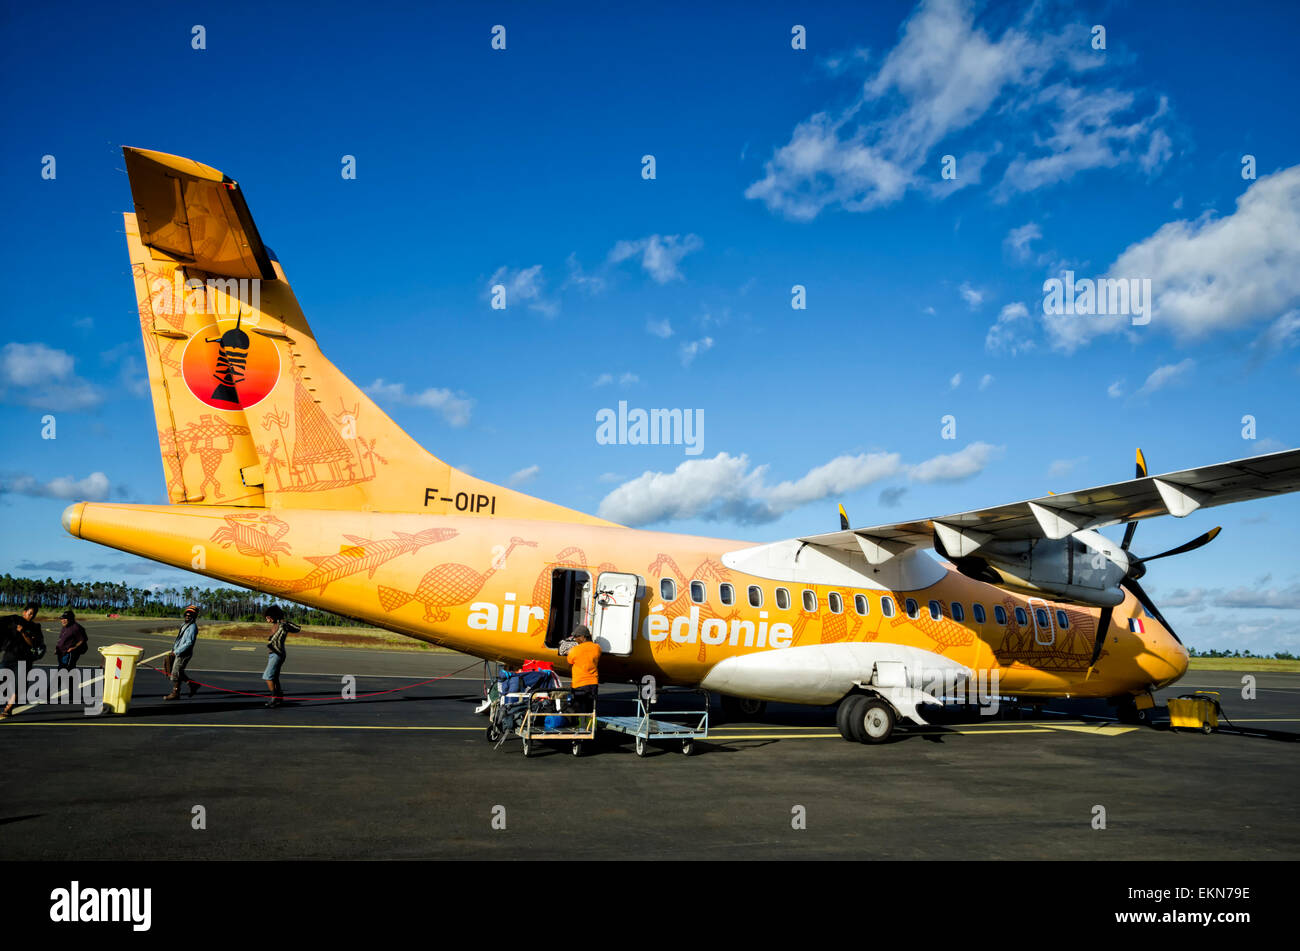 Small ATR42 turboprop airliner in a special livery celebrating indigenous New Caledonia culture. Air Caledonie; - Stock Image